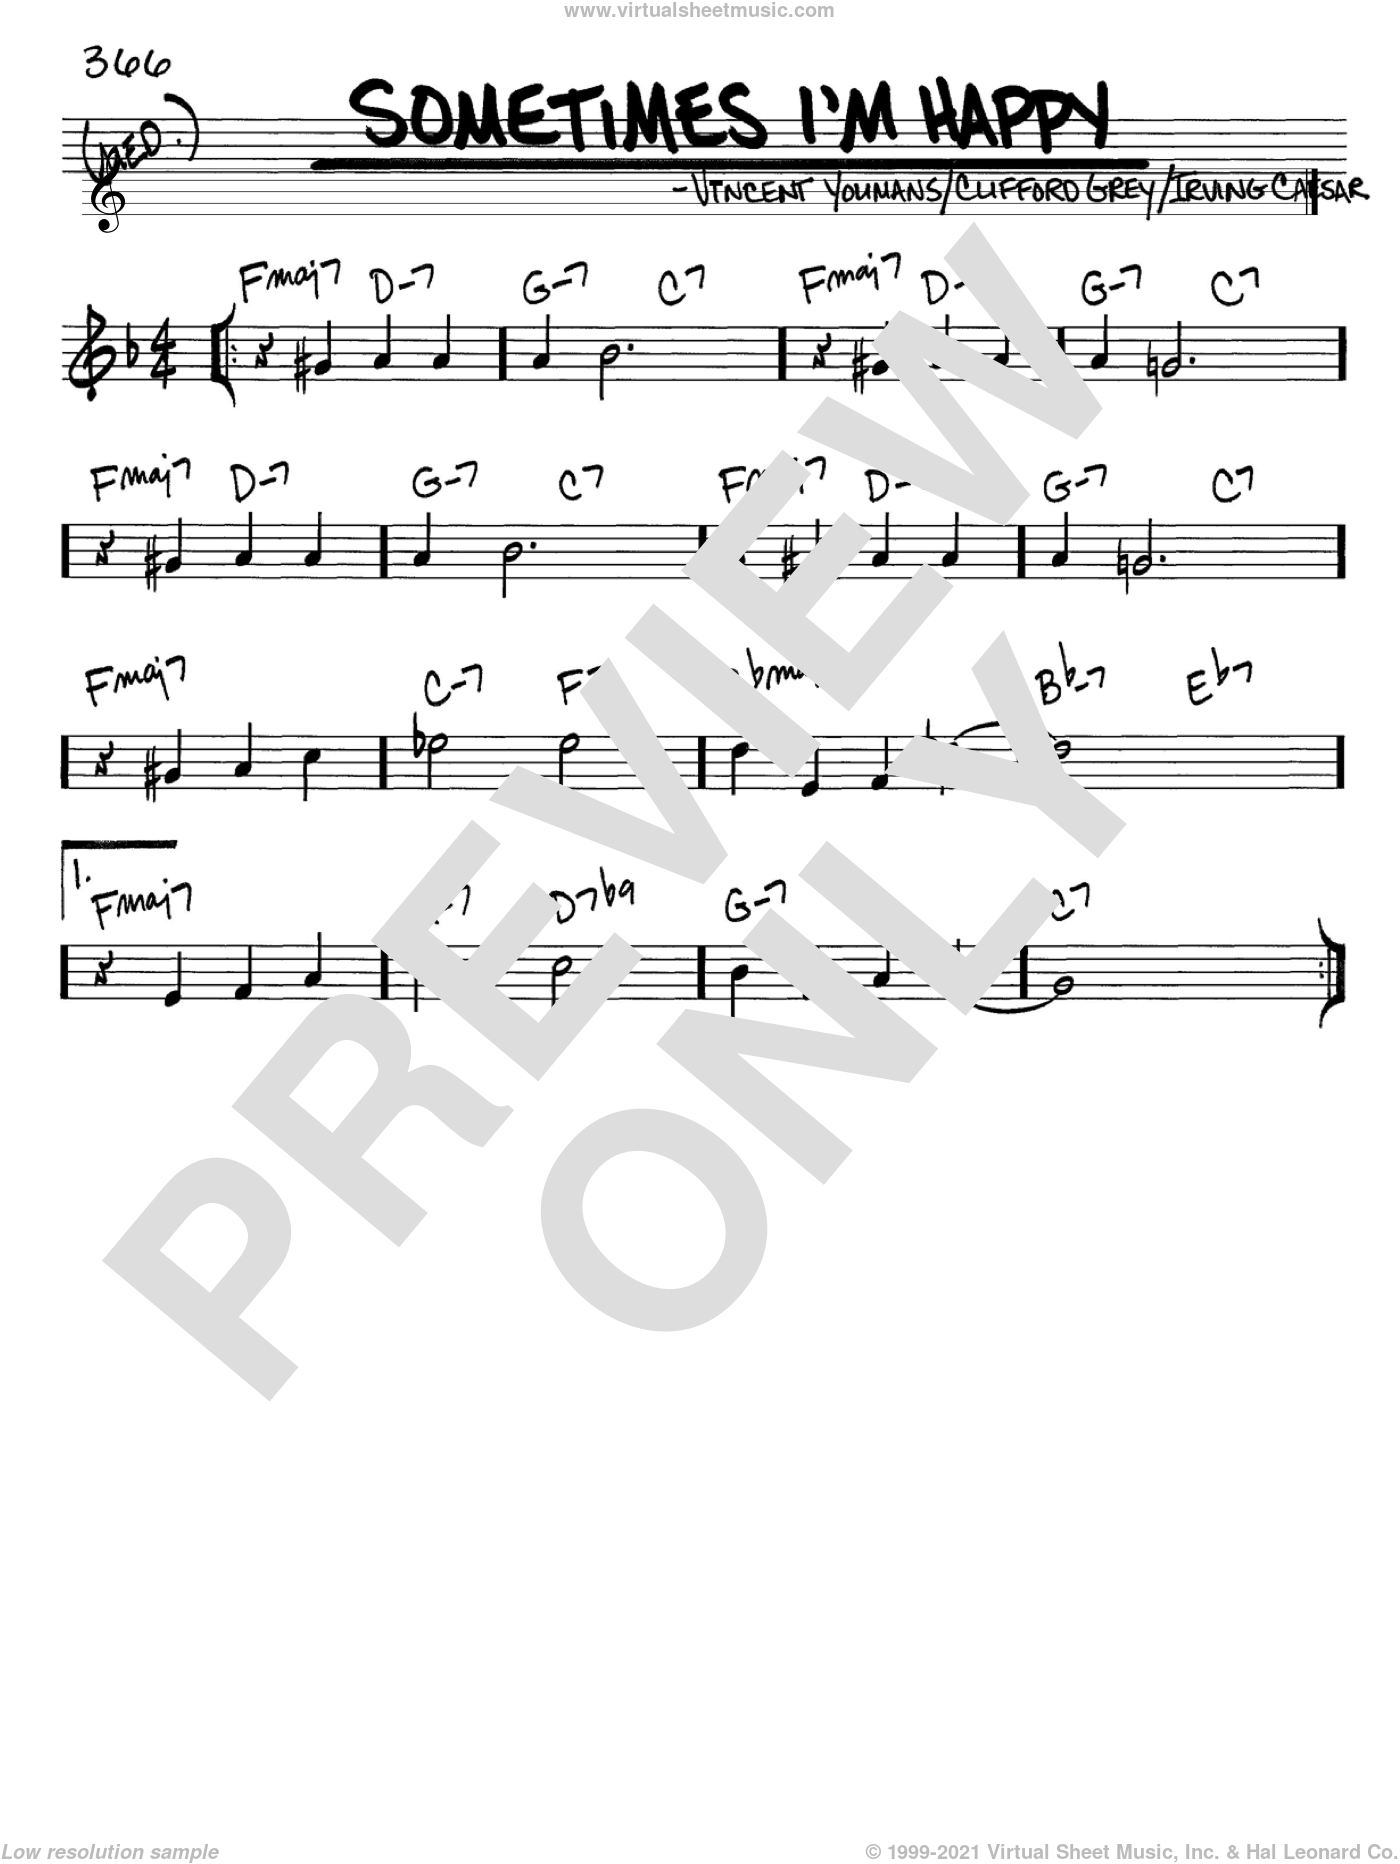 Sometimes I'm Happy sheet music for voice and other instruments (C) by Vincent Youmans